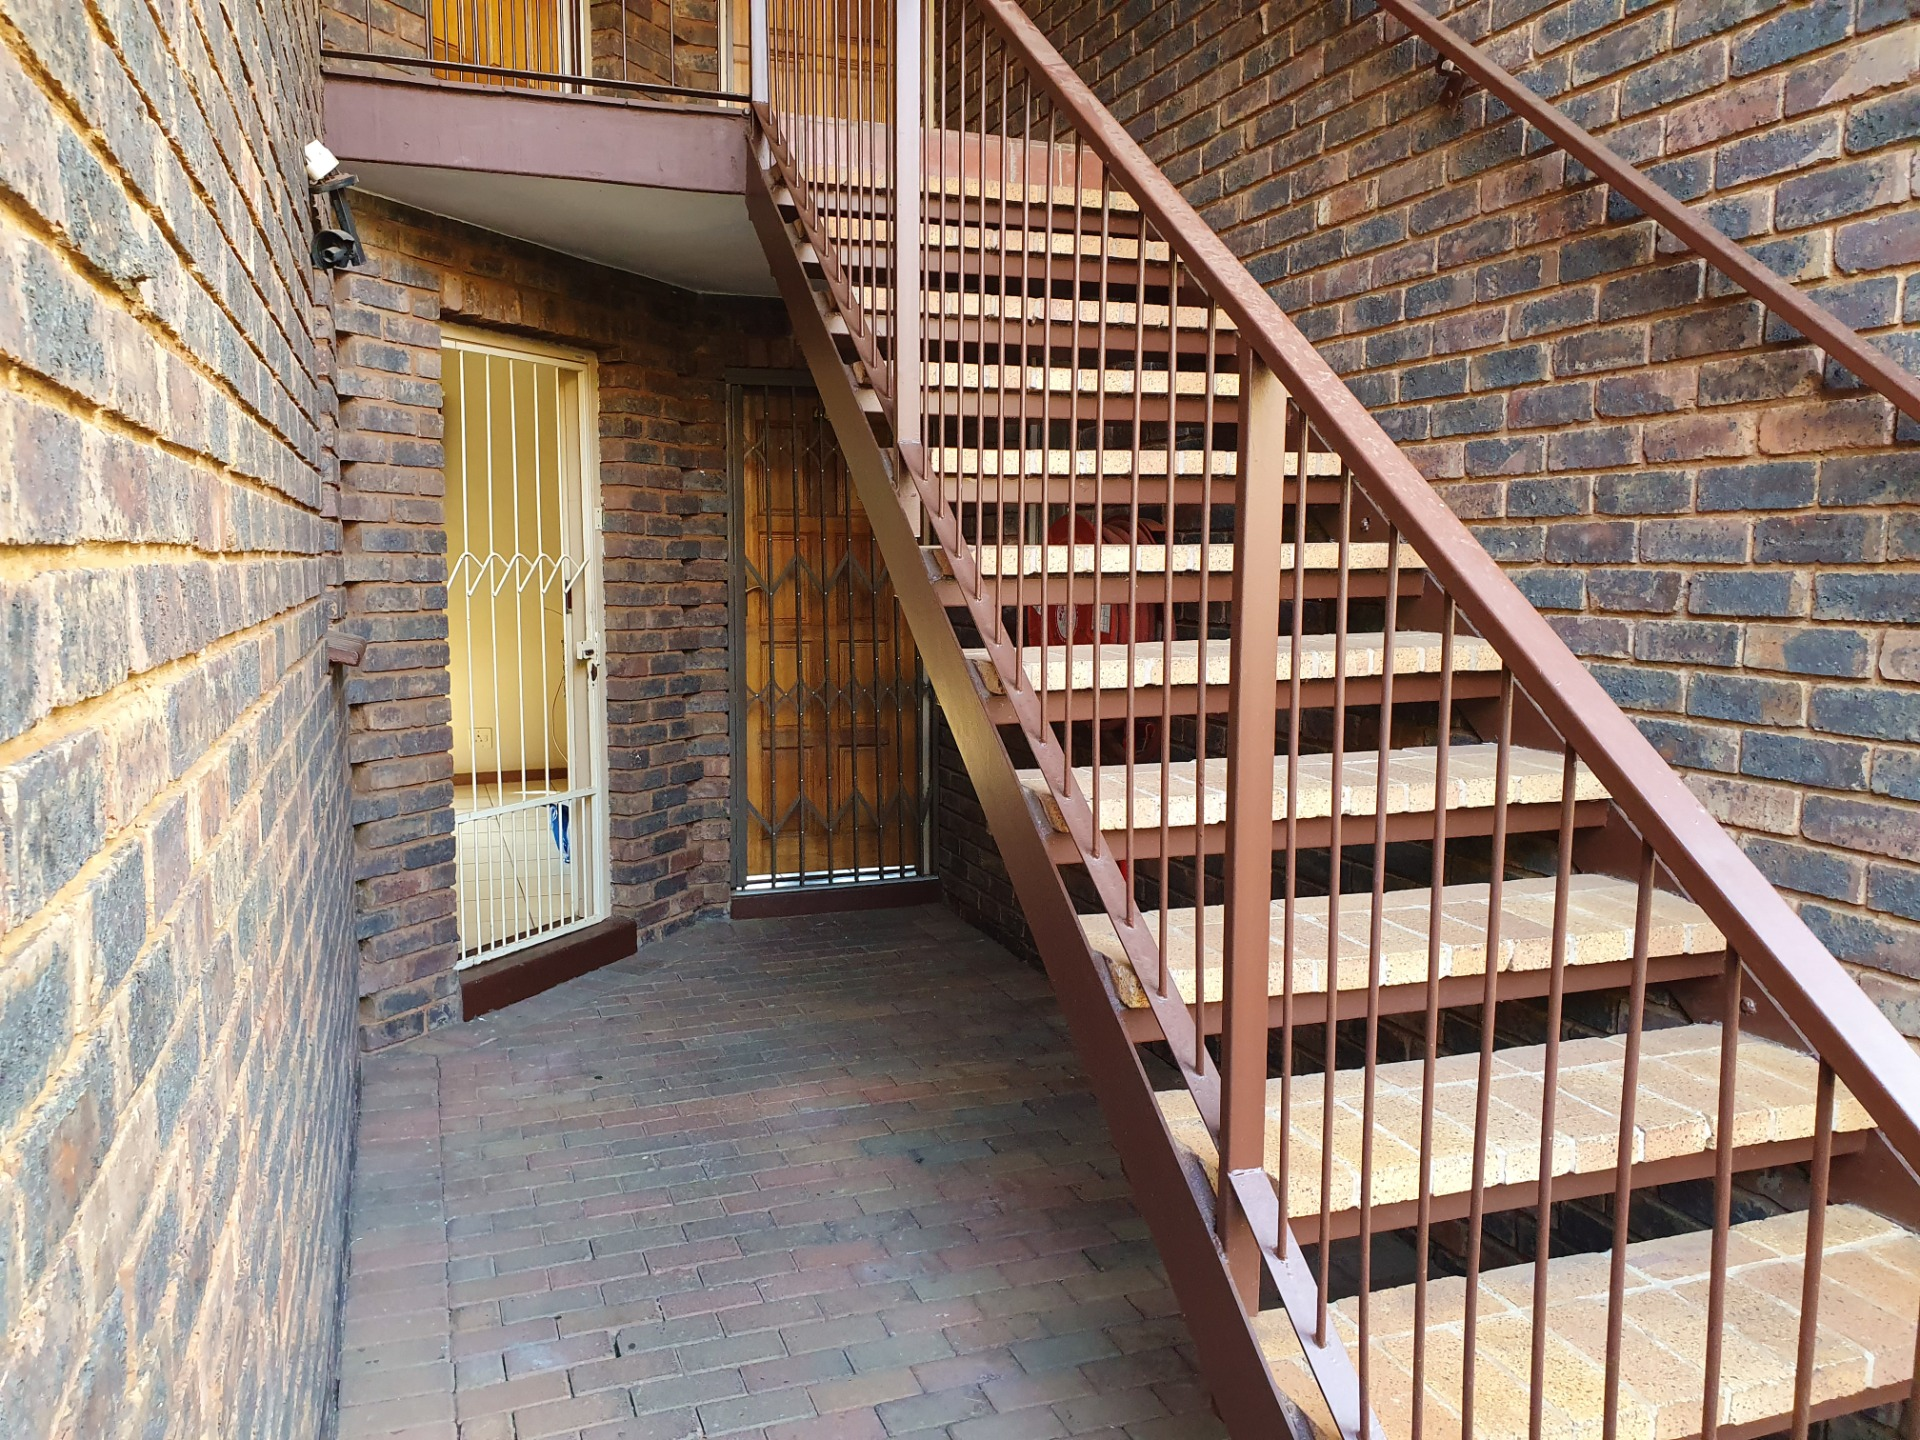 Popular ZwartkopLiving - Neat, Tidy and Spacious 2 bed Ground floor private garden unit in secure Complex